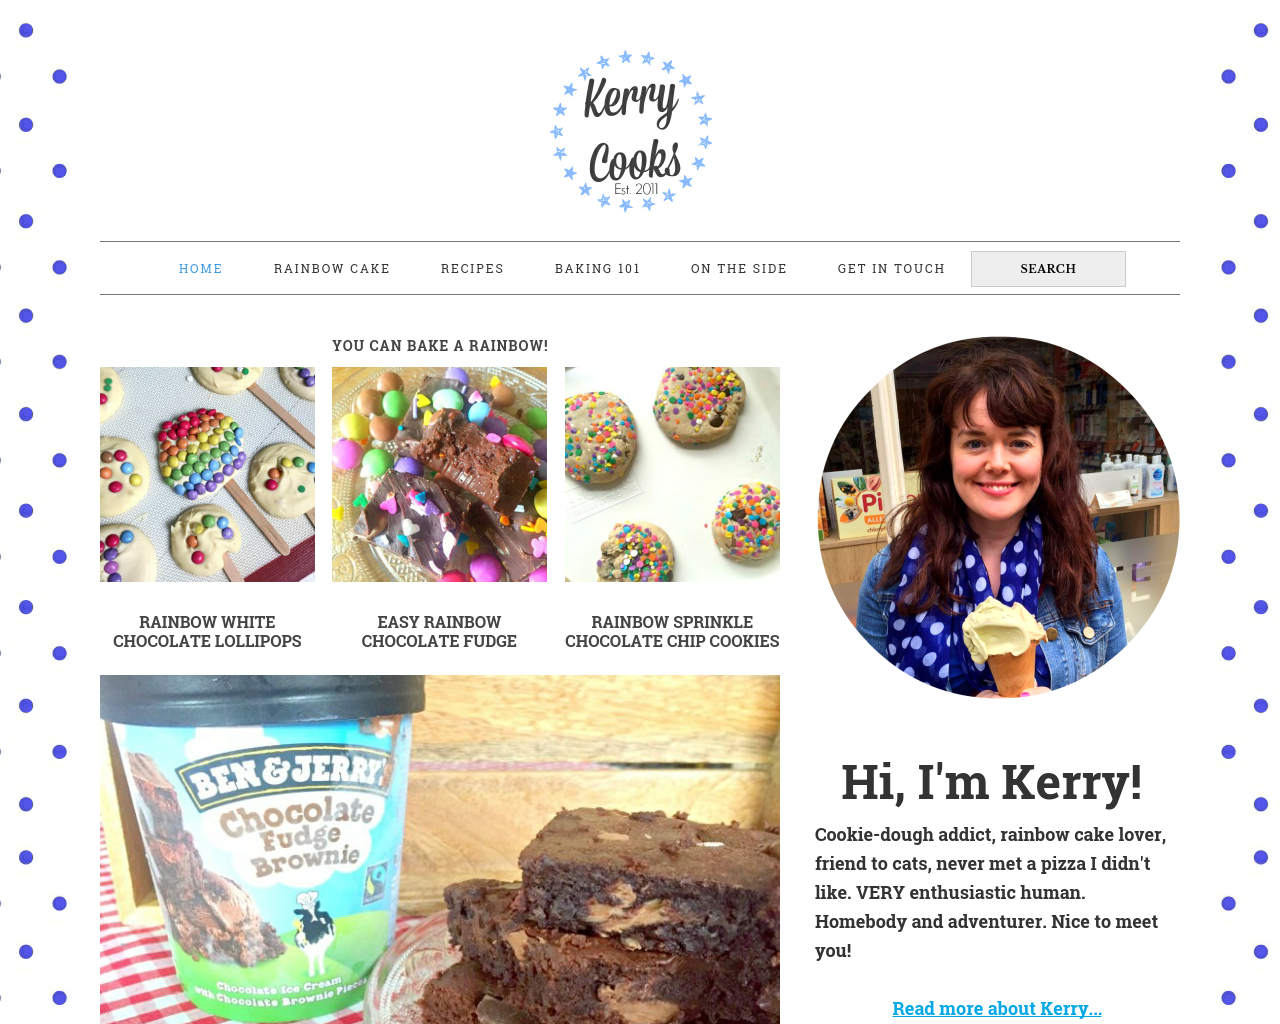 Kerry-Cooks-Advertising-Reviews-Pricing